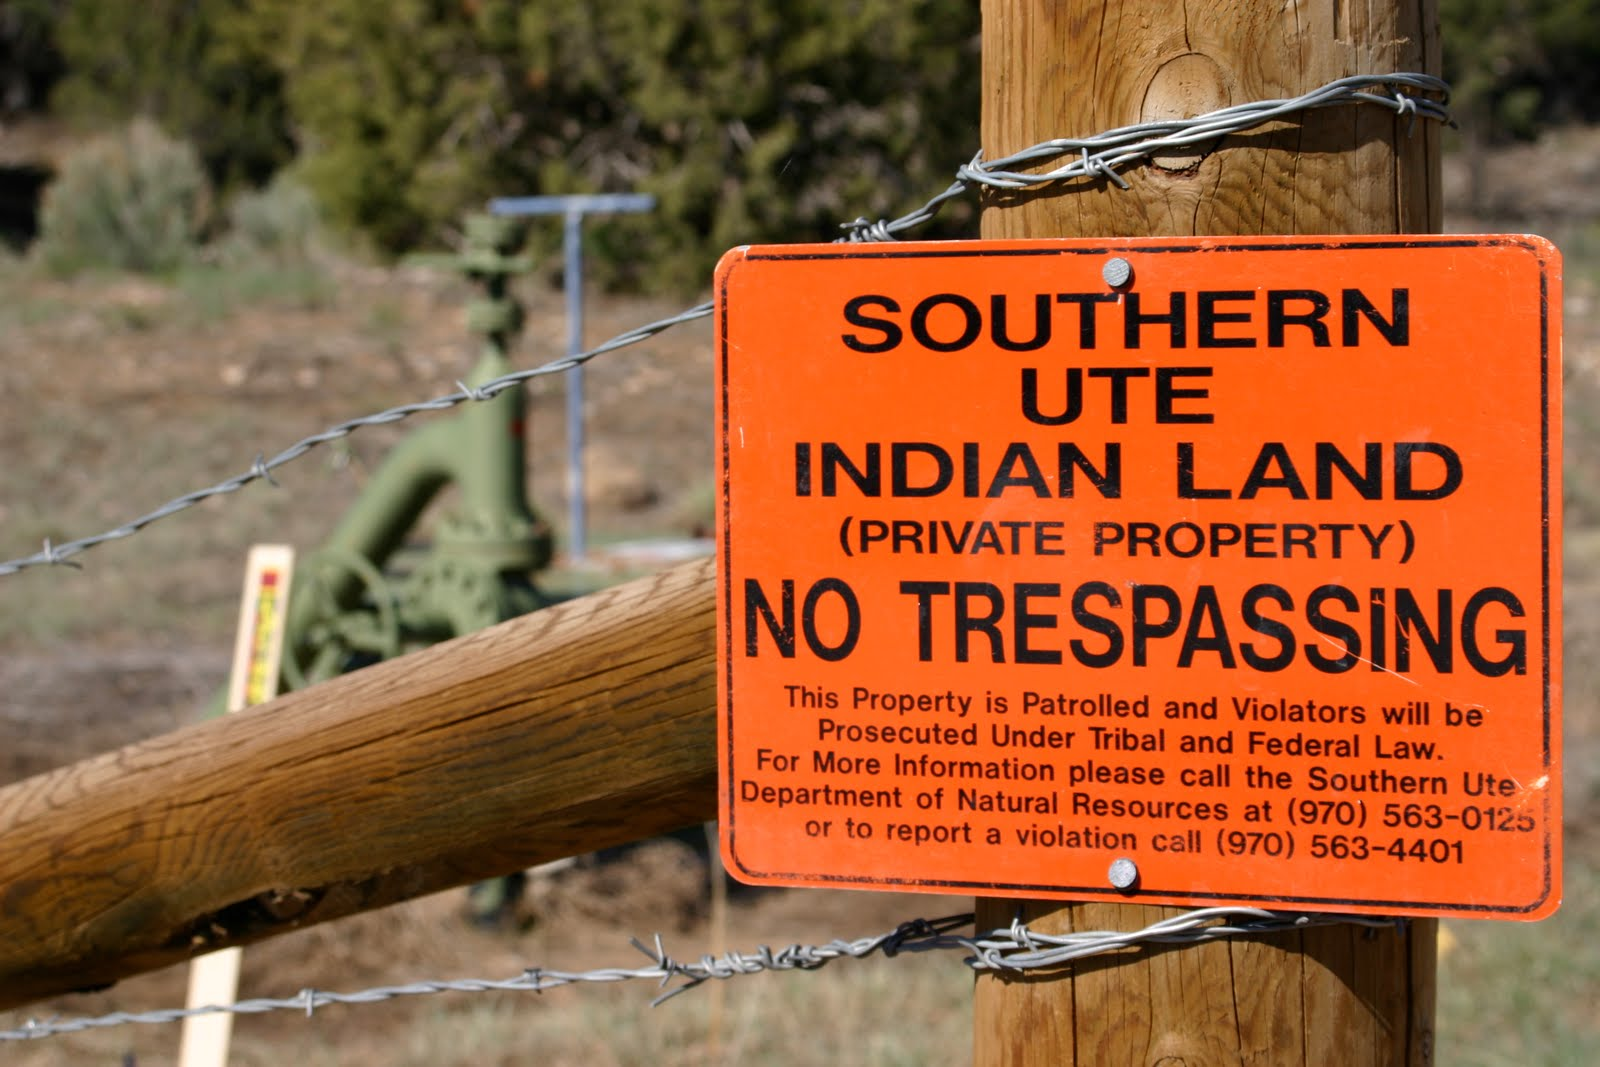 Southern Ute Tribe sues to block fracking rule on reservation